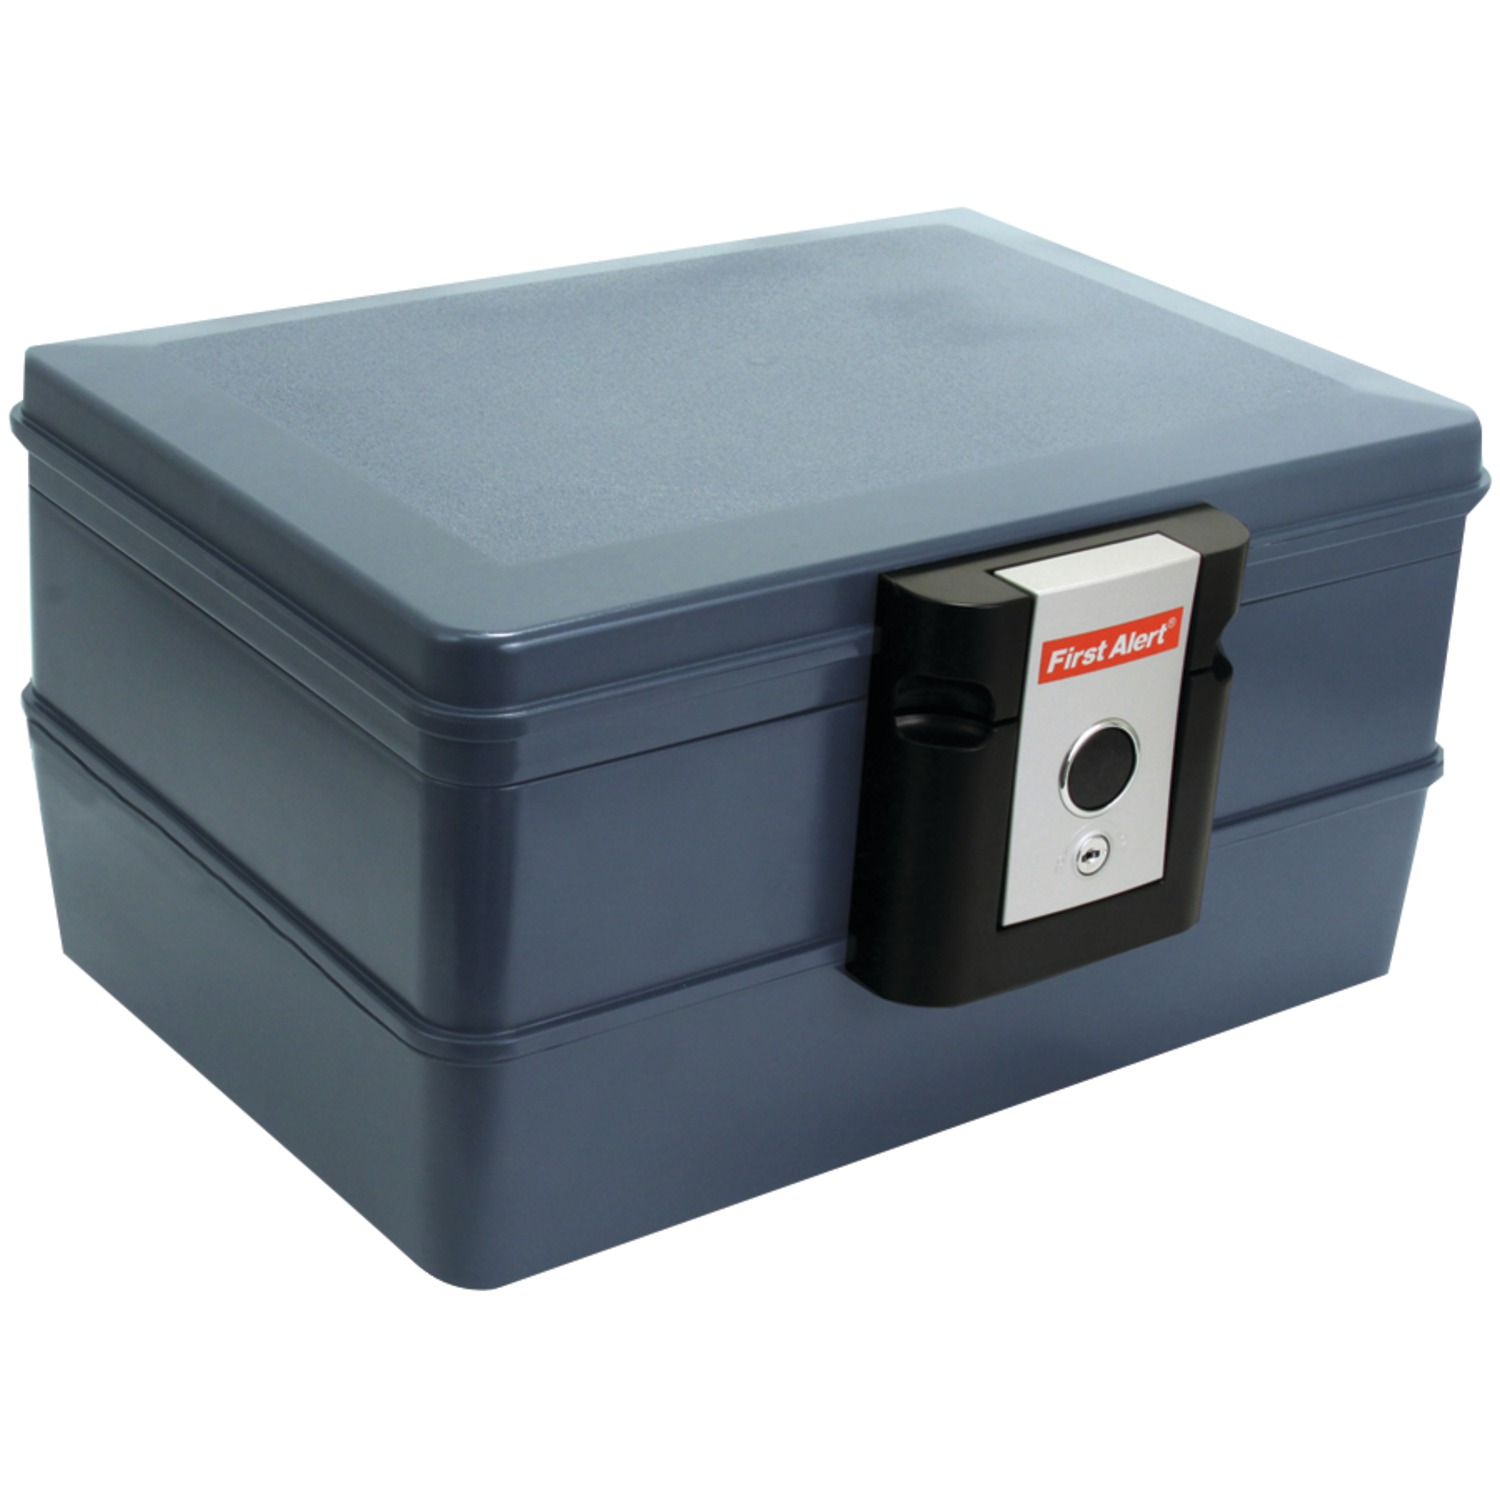 First Alert 0.39 cu. ft. Waterproof and Fire Resistant Chest with Key Lock, 2030F Gray by First Alert